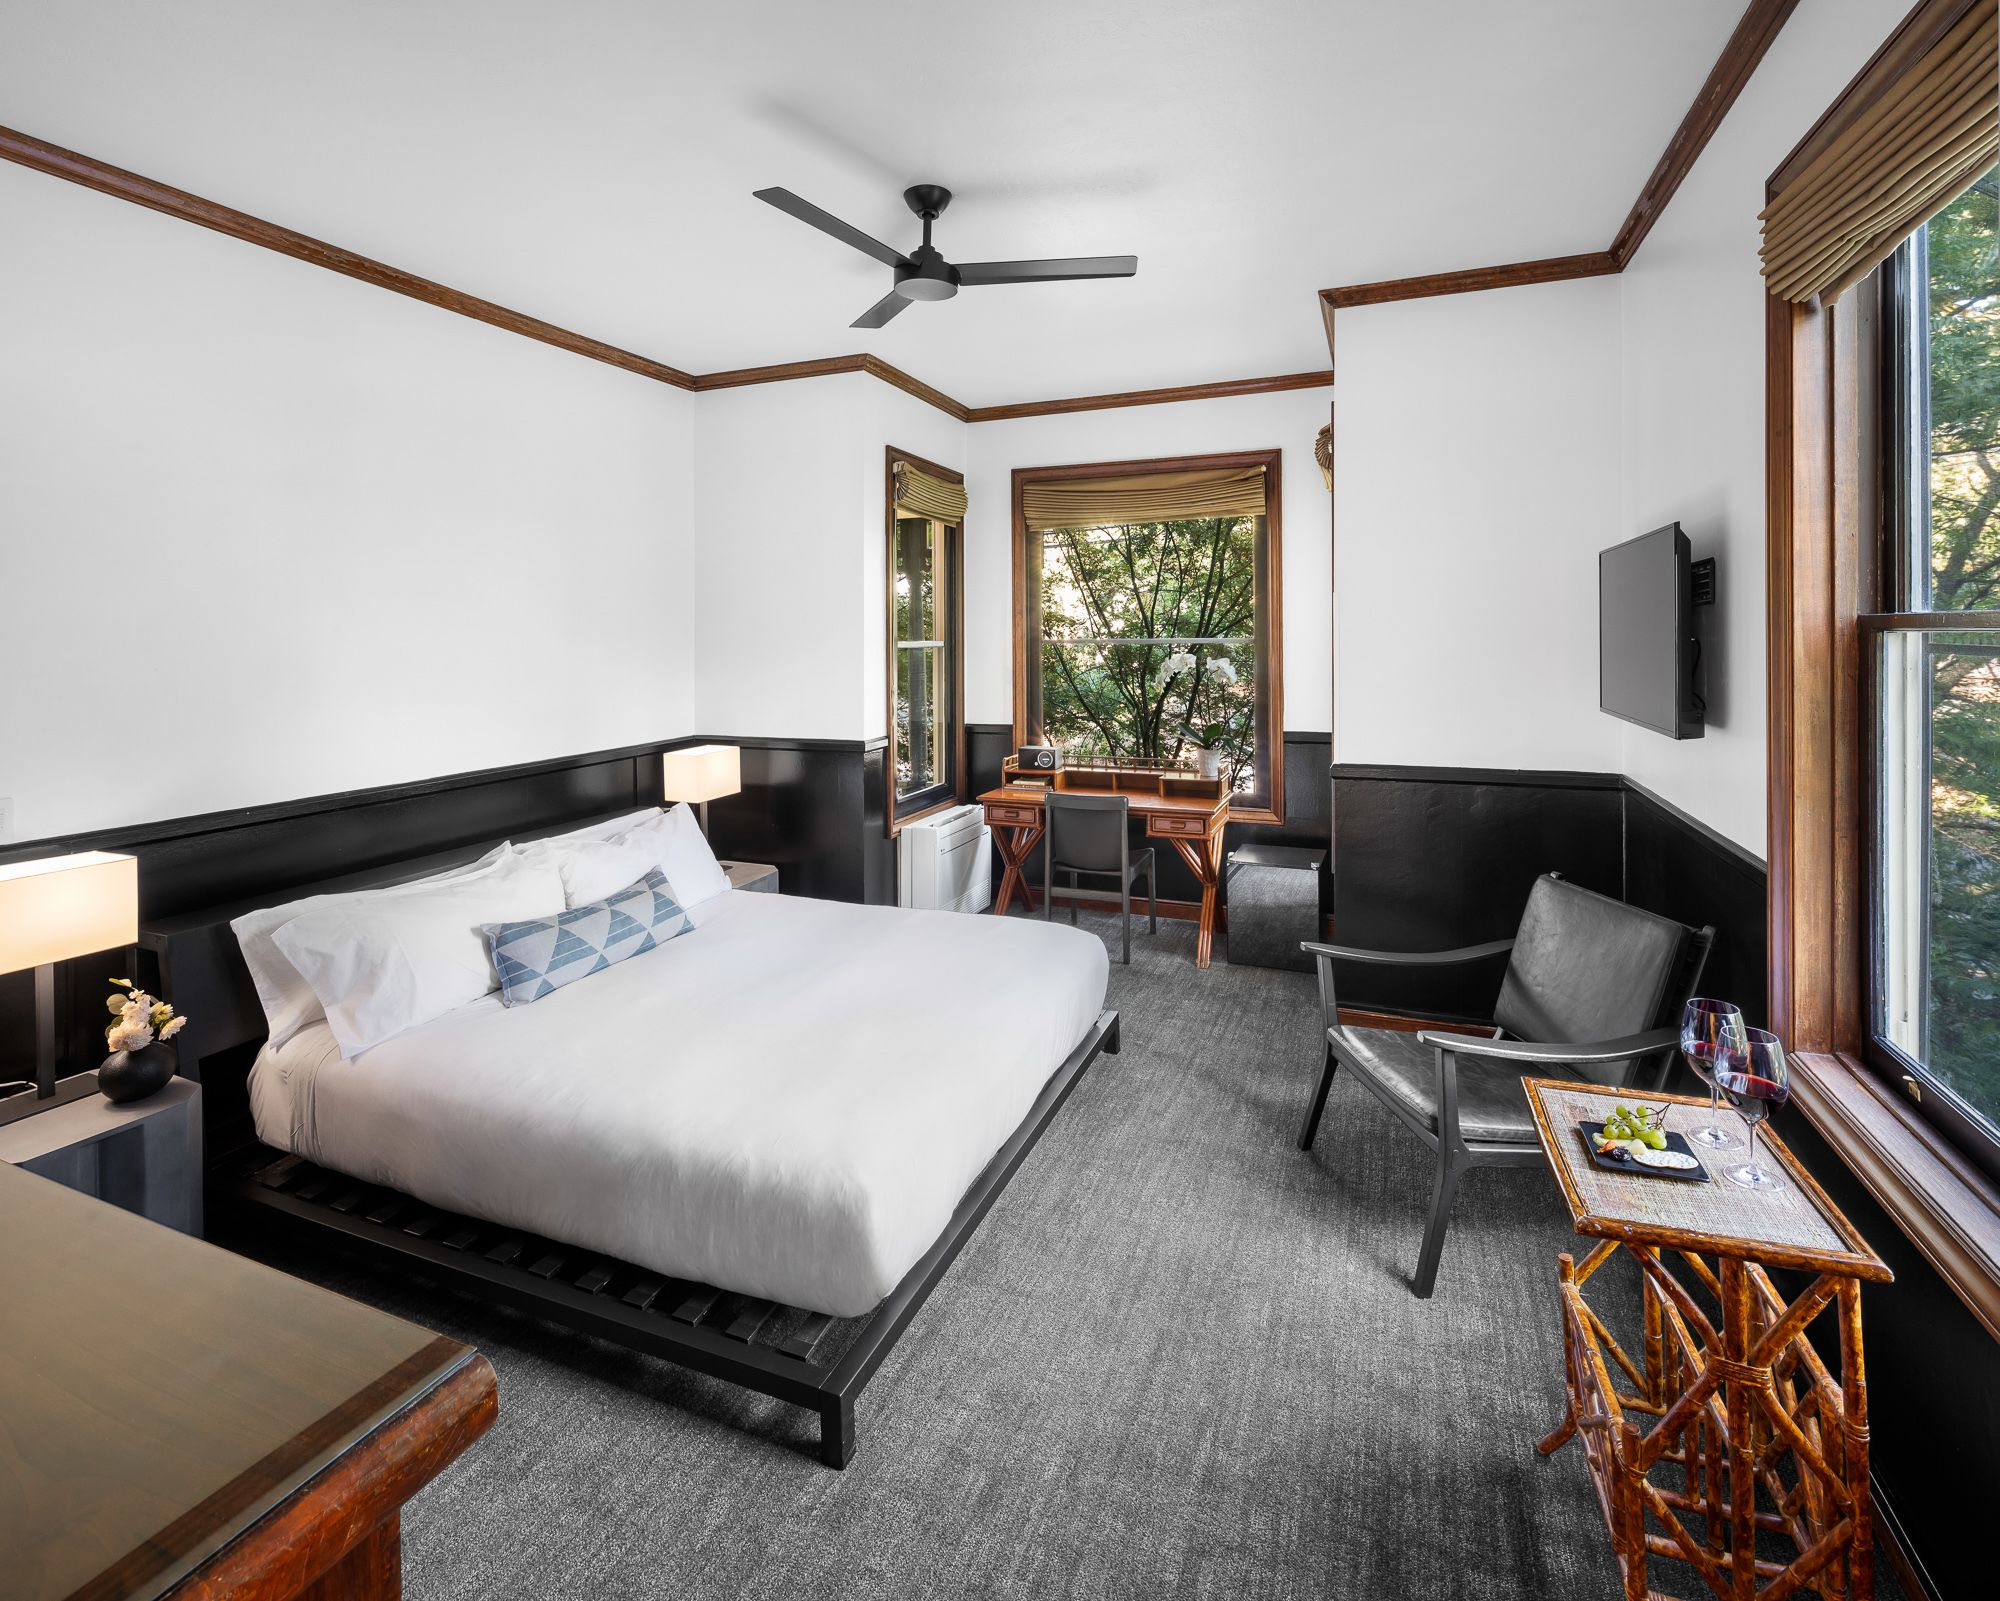 Deluxe King Guestrooms | Gaige House + Ryokan